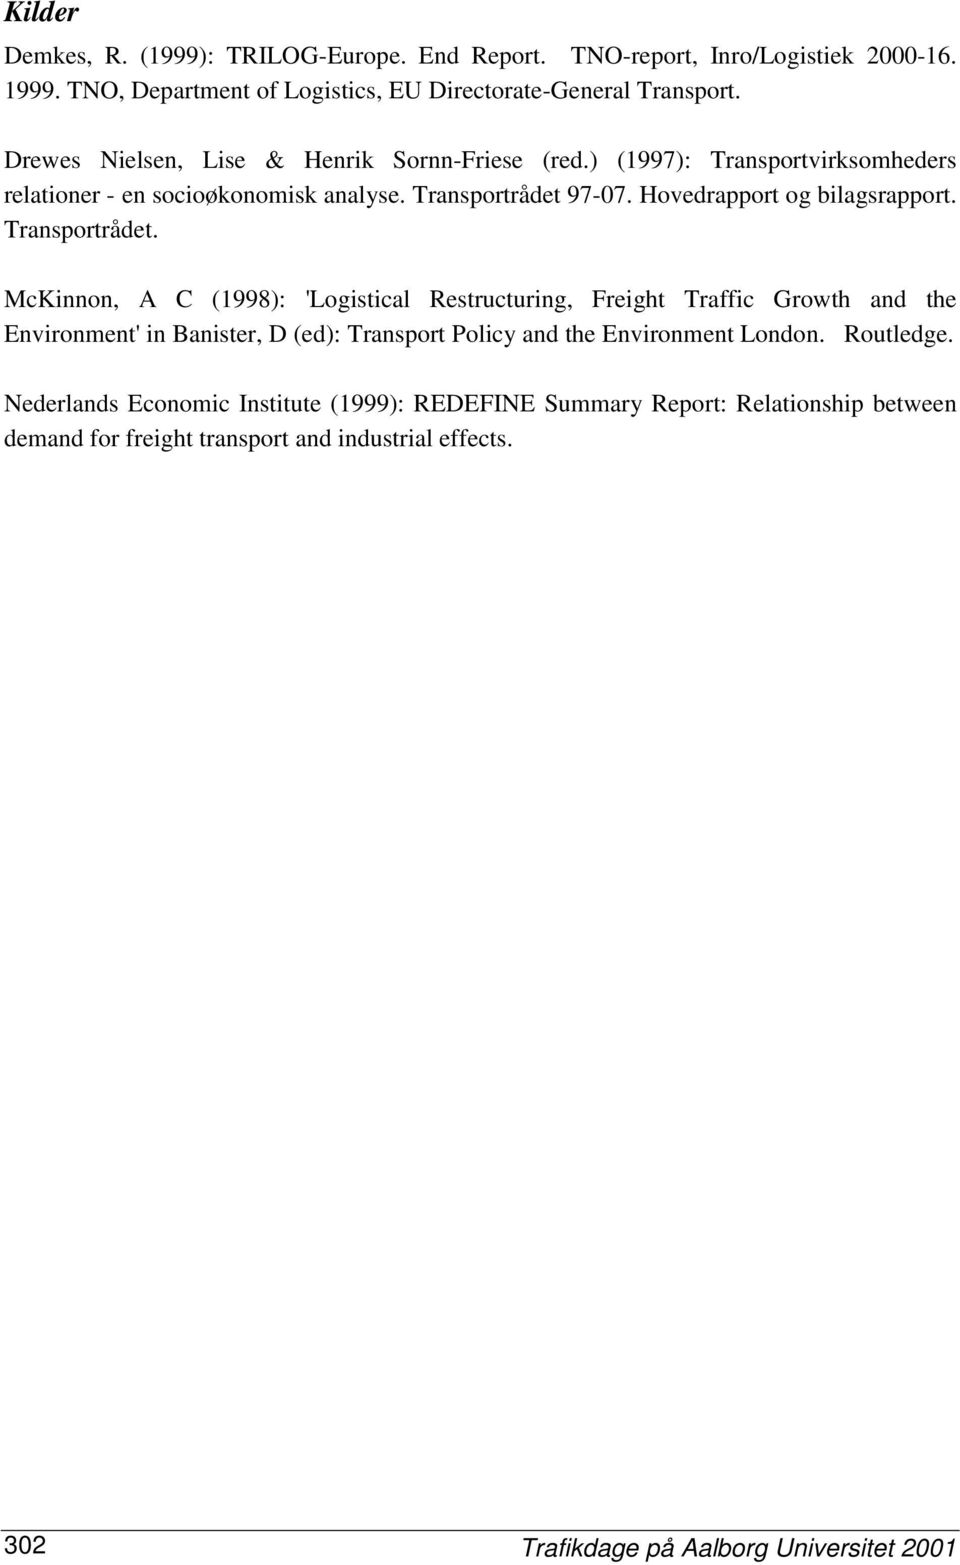 Transportrådet. McKinnon, A C (1998): 'Logistical Restructuring, Freight Traffic Growth and the Environment' in Banister, D (ed): Transport Policy and the Environment London.